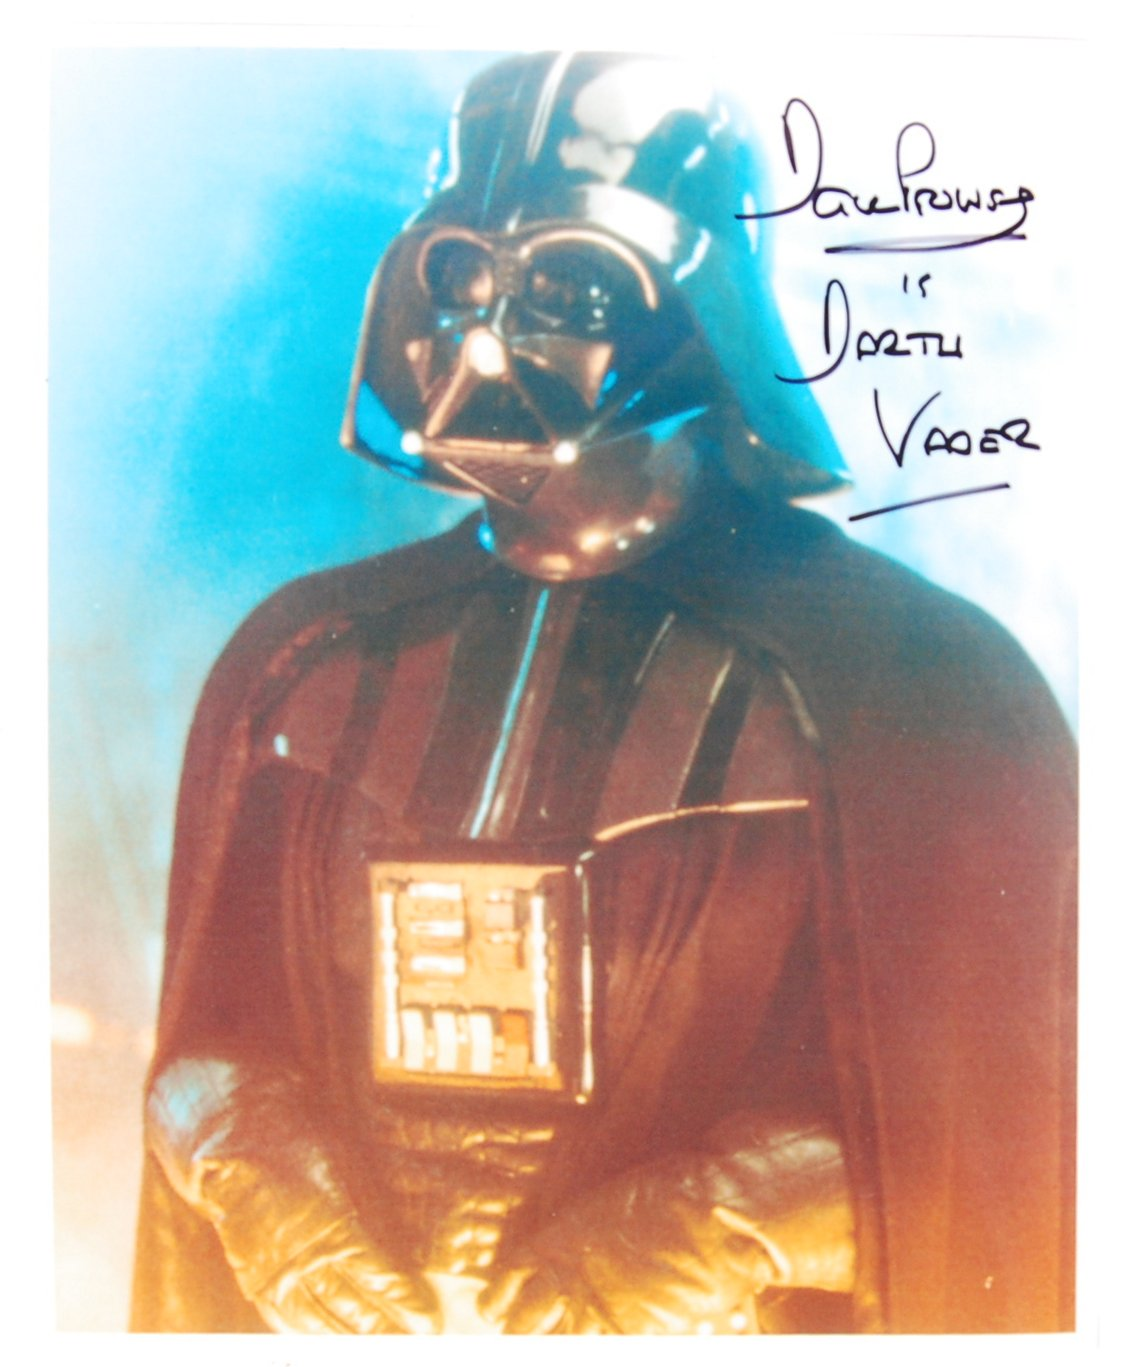 Lot 14 - STAR WARS - DAVID PROWSE - DARTH VADER AUTOGRAPHED PHOTO